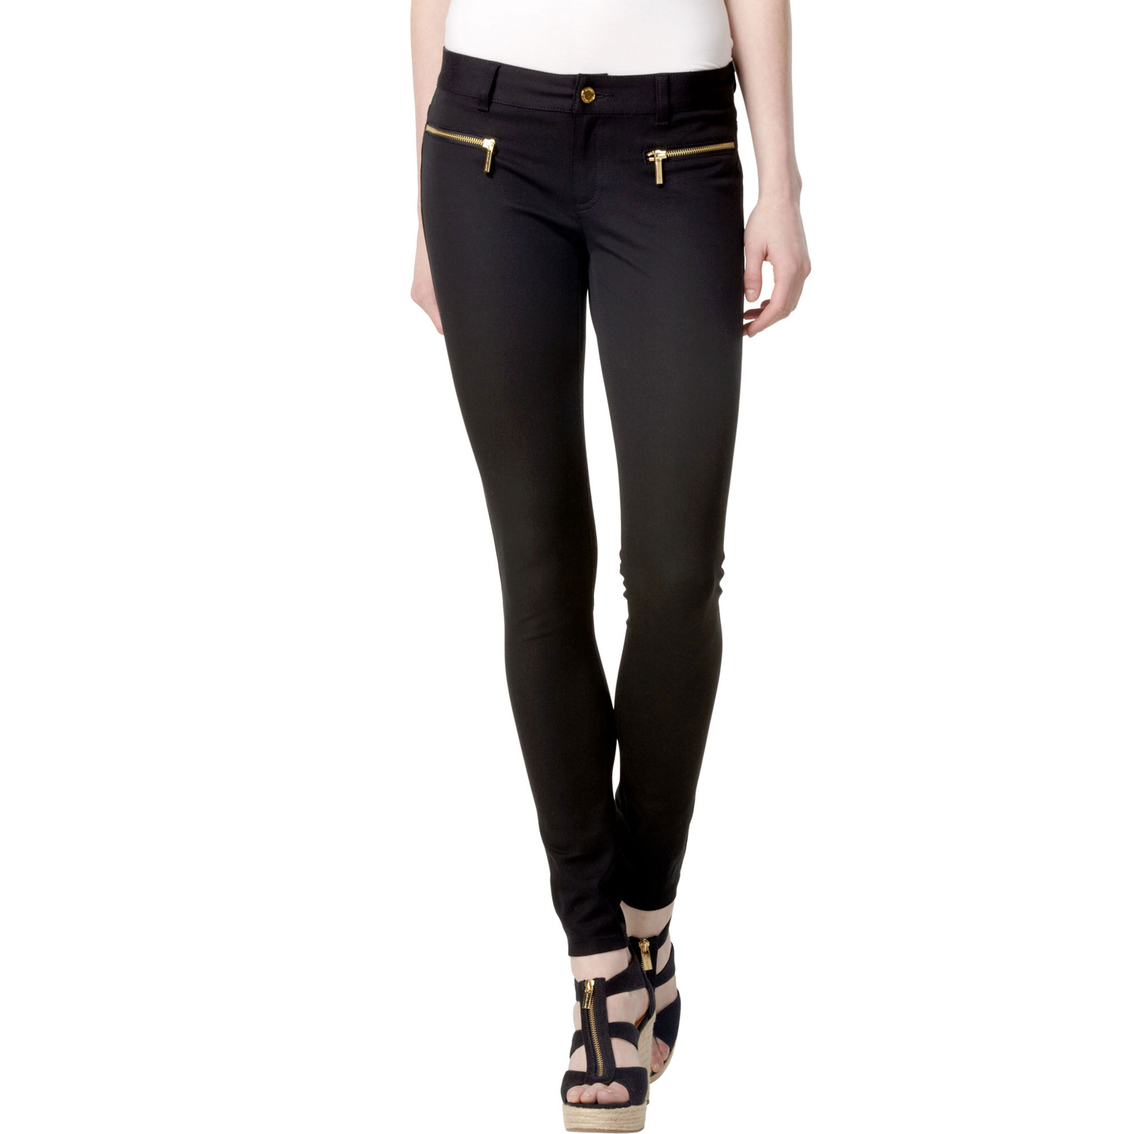 Michael Kors Stretch Twill Zip Pants | Pants | Apparel | Shop The ...